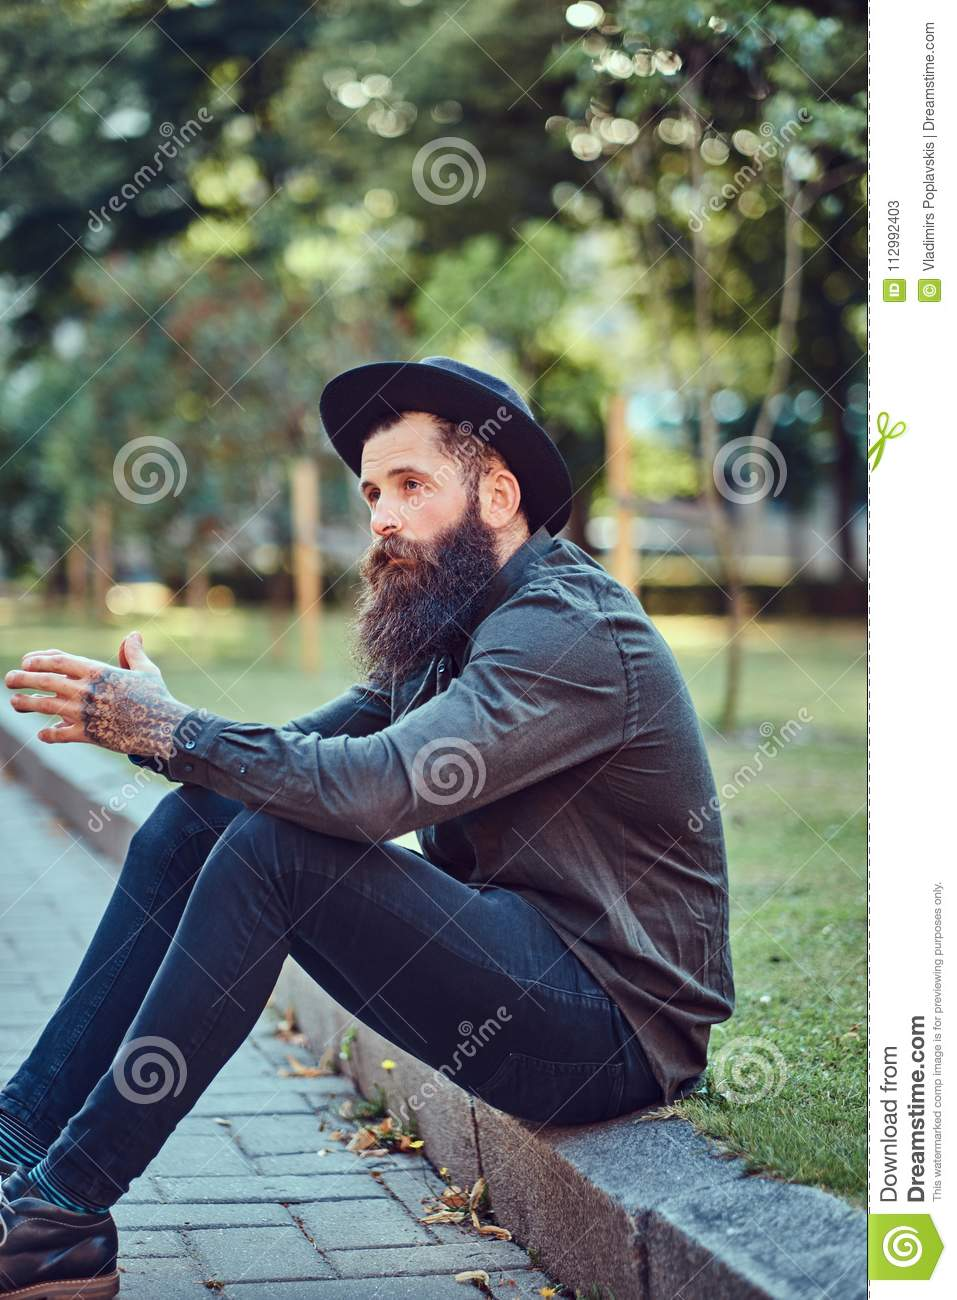 A handsome hipster traveler with a stylish beard and tattoo on his arms dressed in casual clothes and hat, sitting on